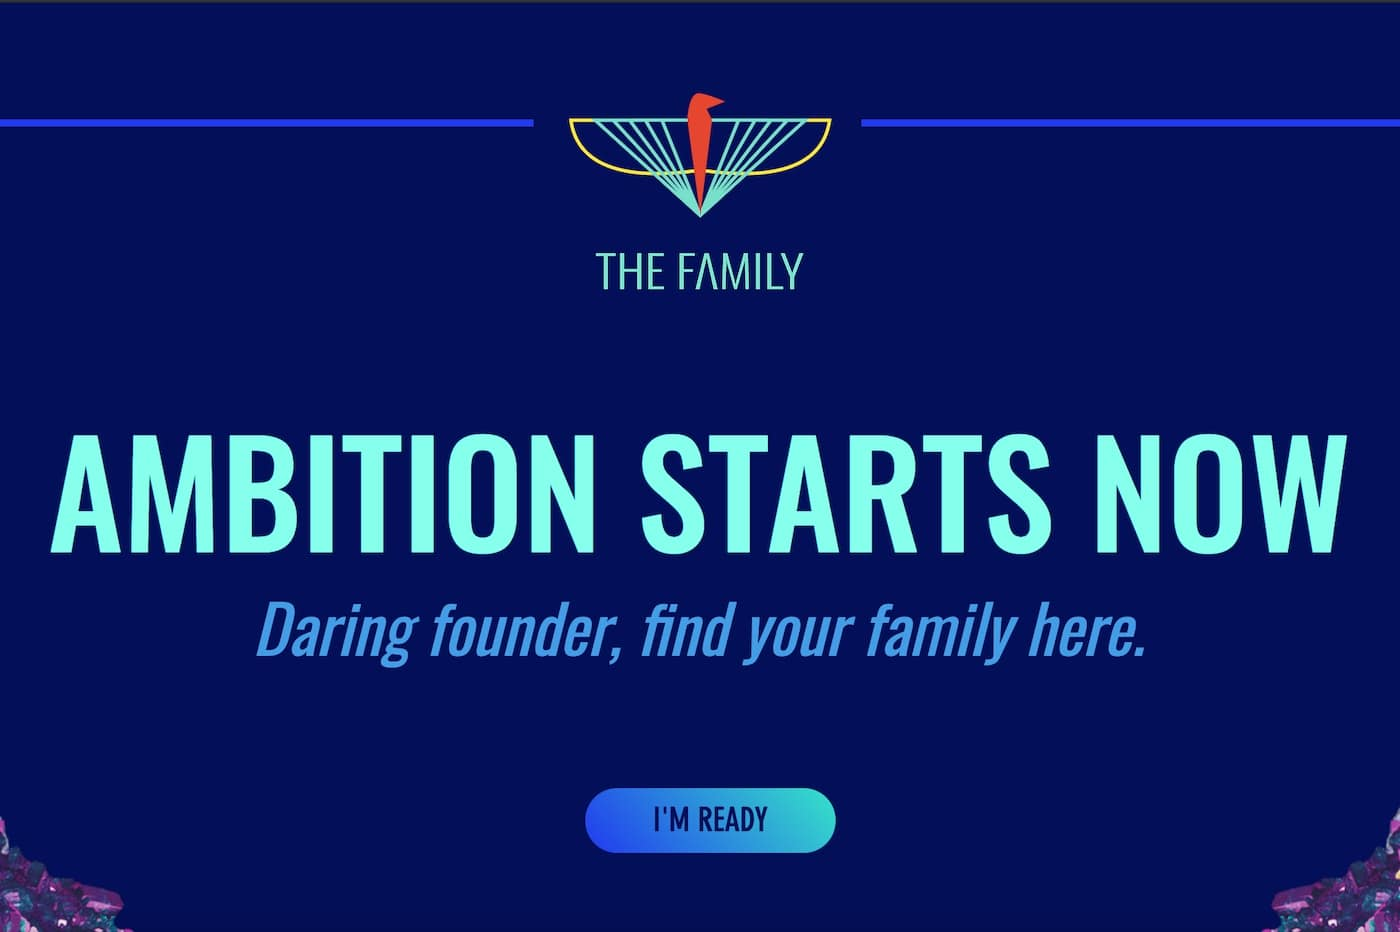 The Family Startup